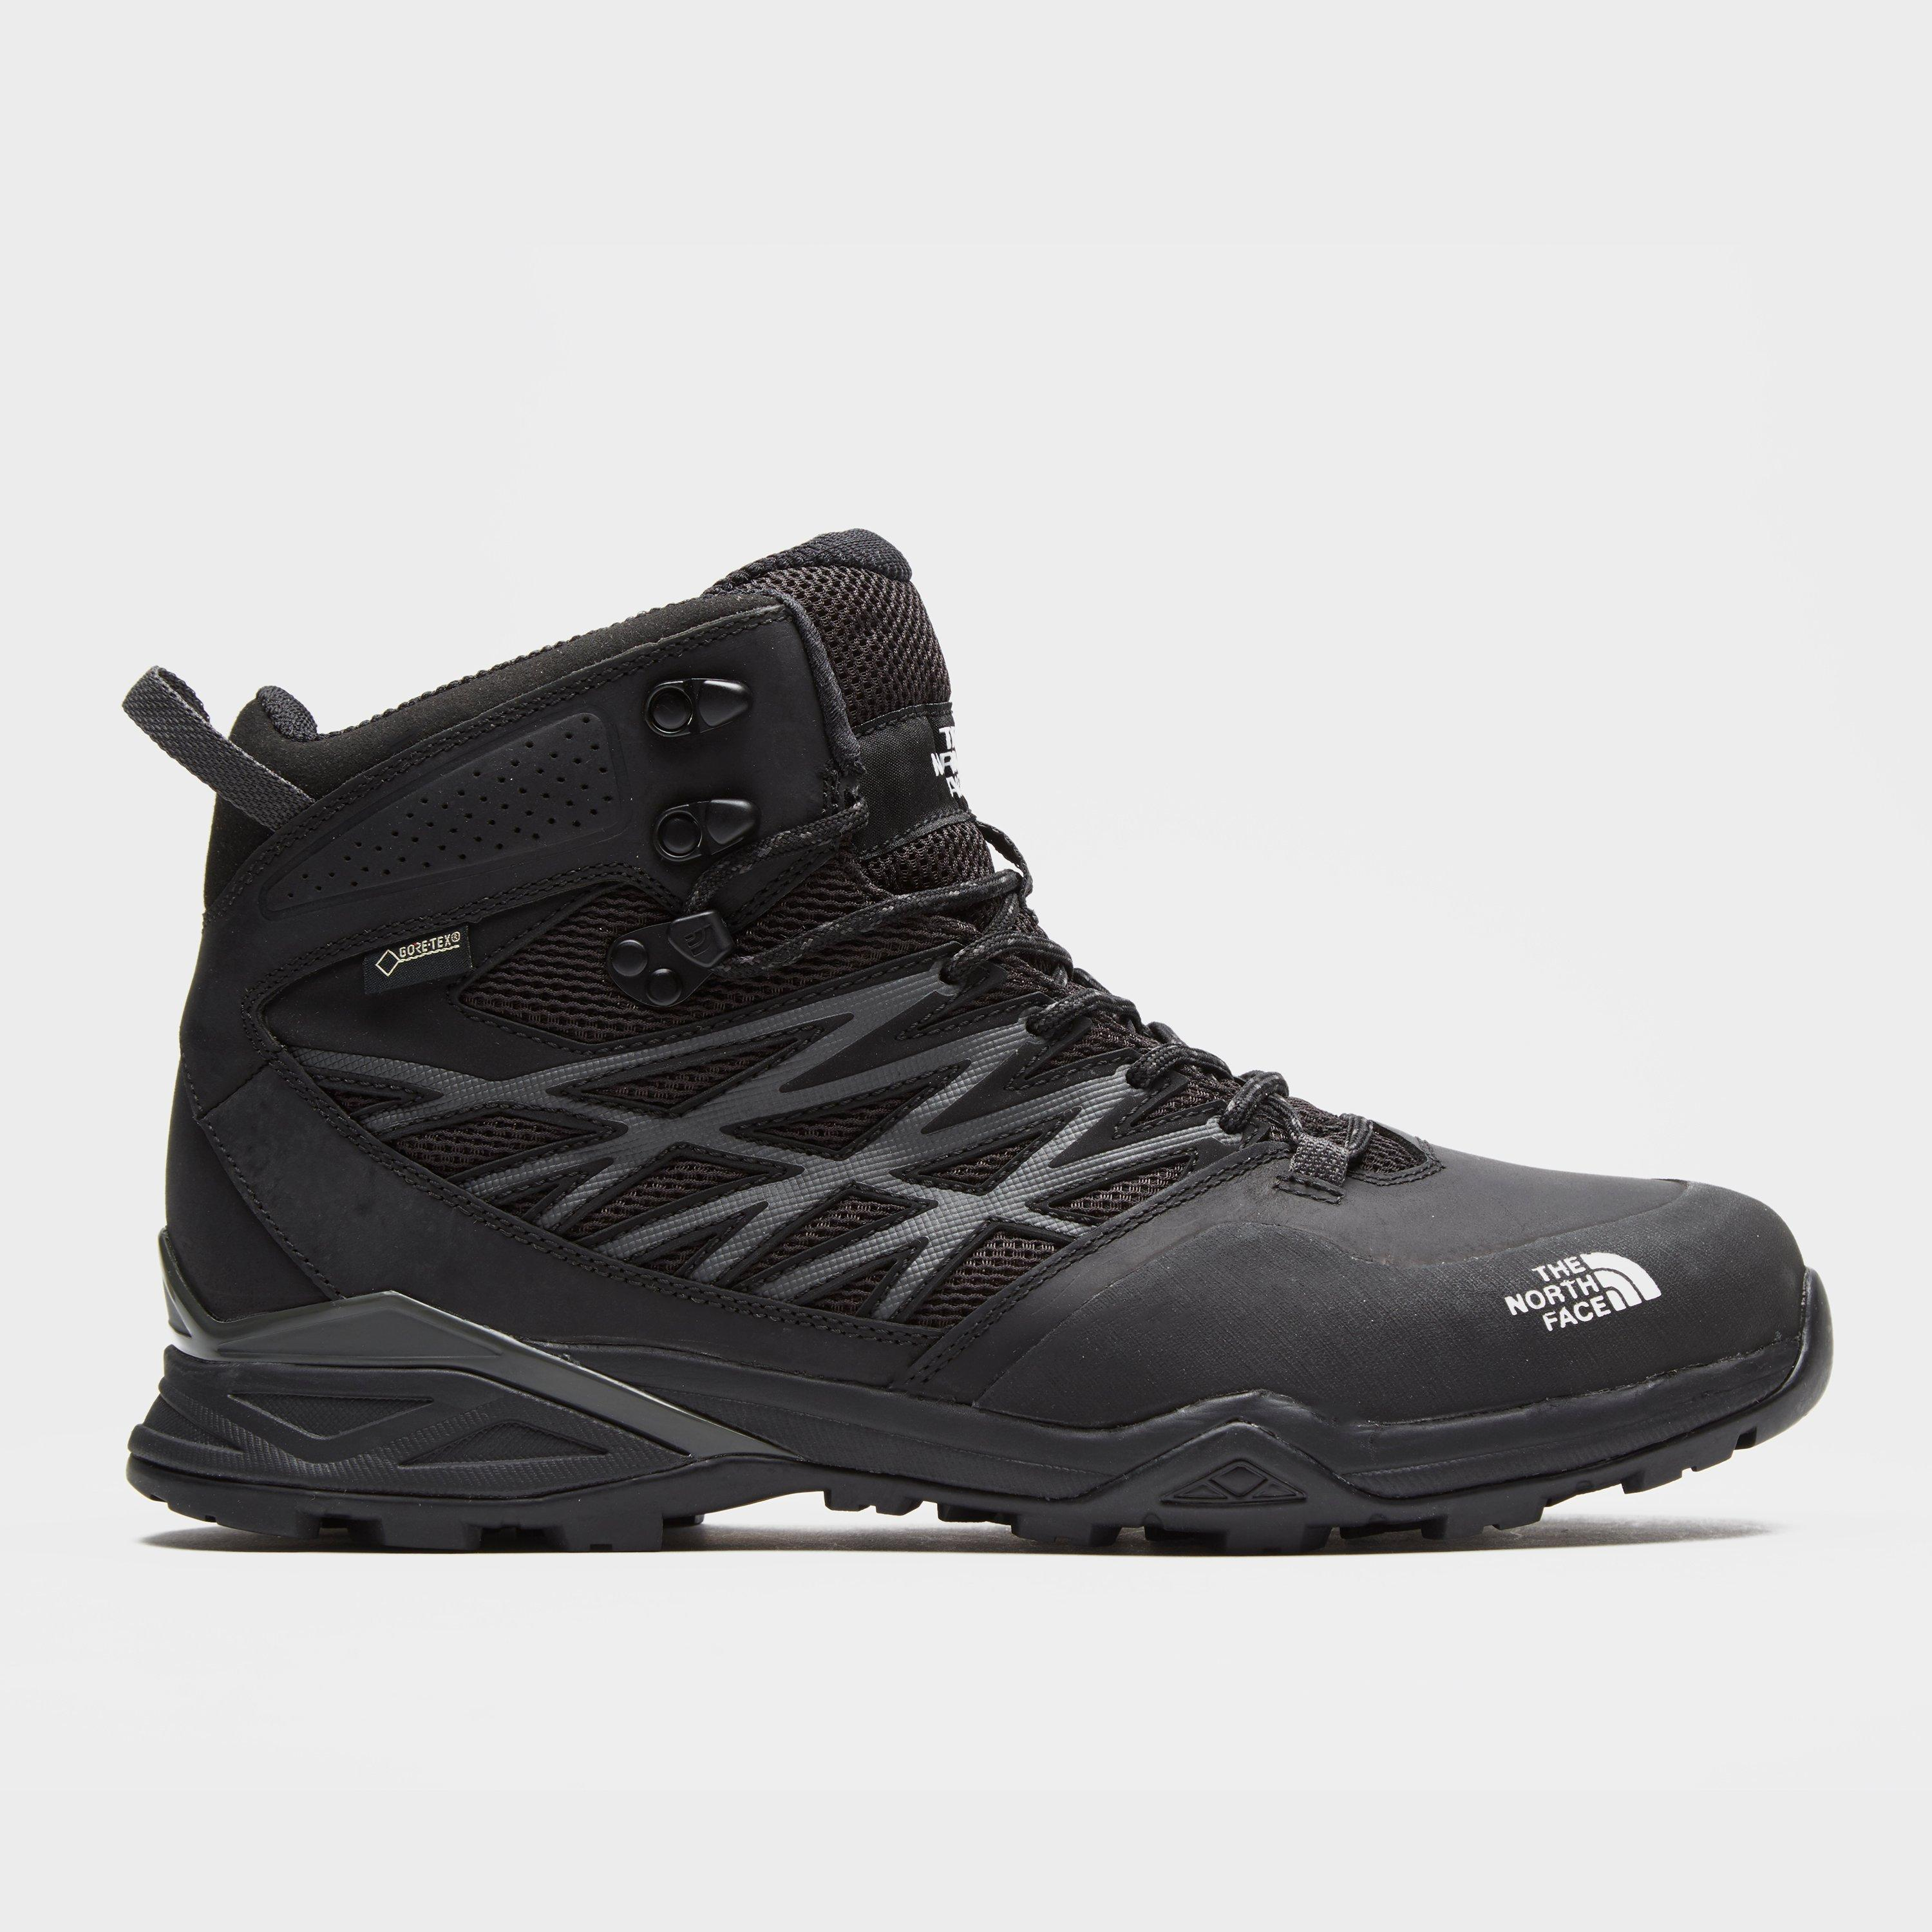 North Face Womens Shoes Cheap